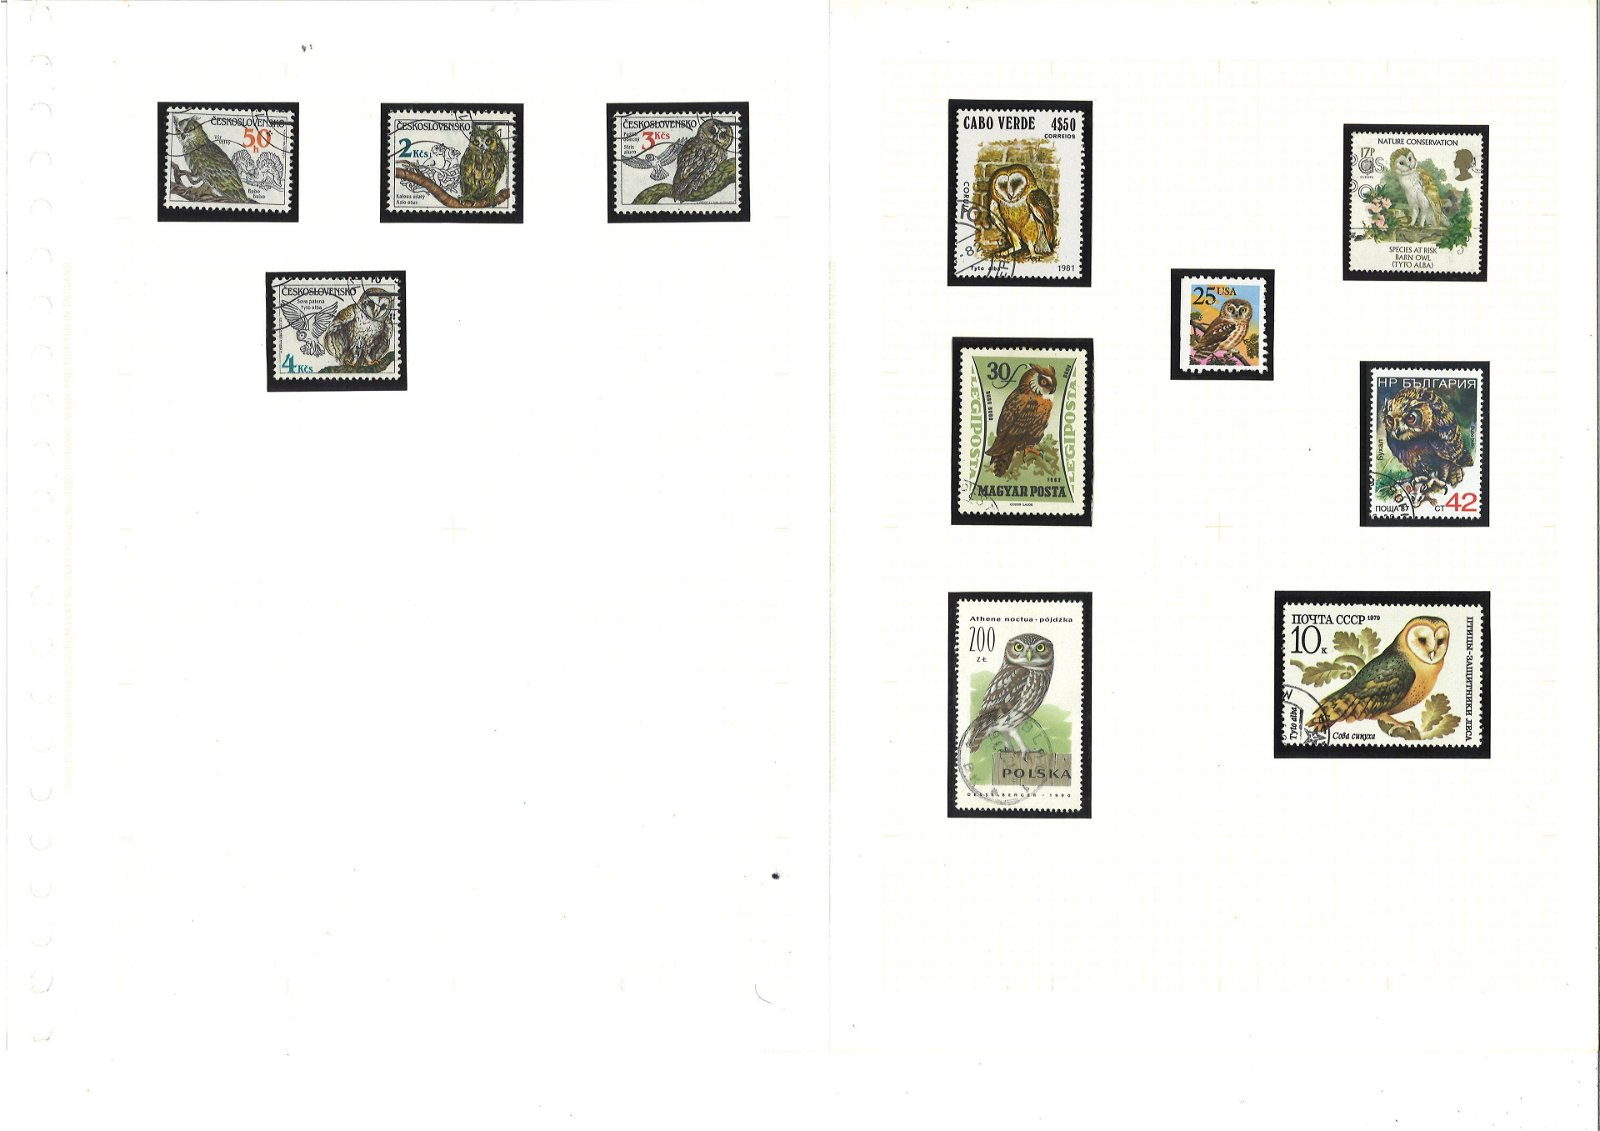 Collection of thematic stamps in album. 80+ stamps.